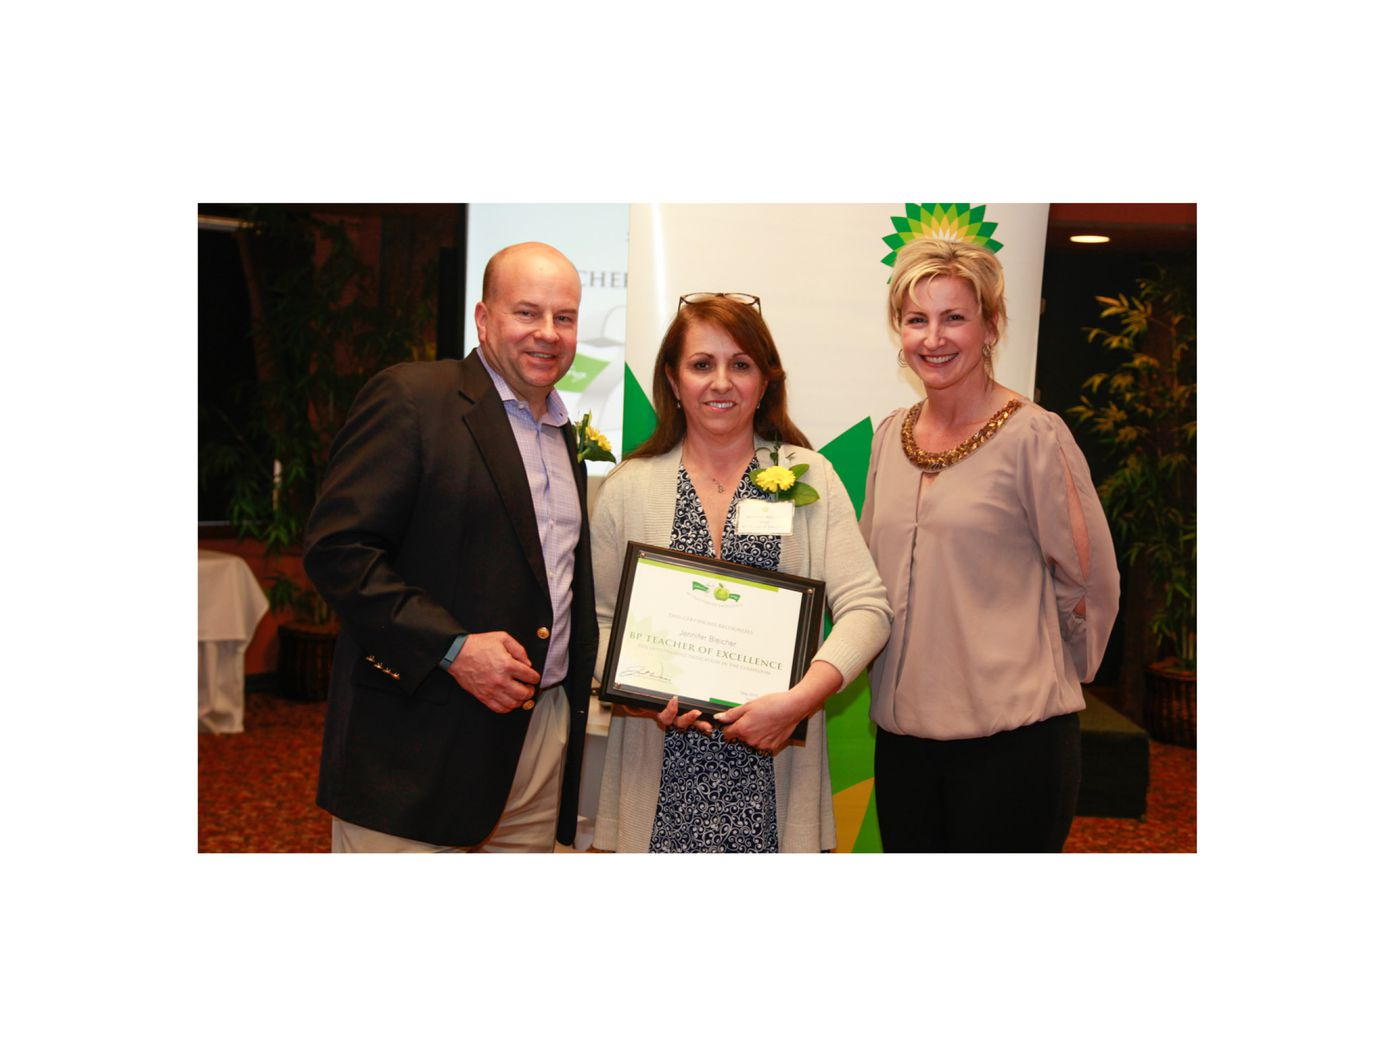 Cottonwood Creek Elementary School teacher Jennifer Bleicher (pictured in the middle) received the BP Teachers of Excellence Award in 2015. Photo courtesy of BP.